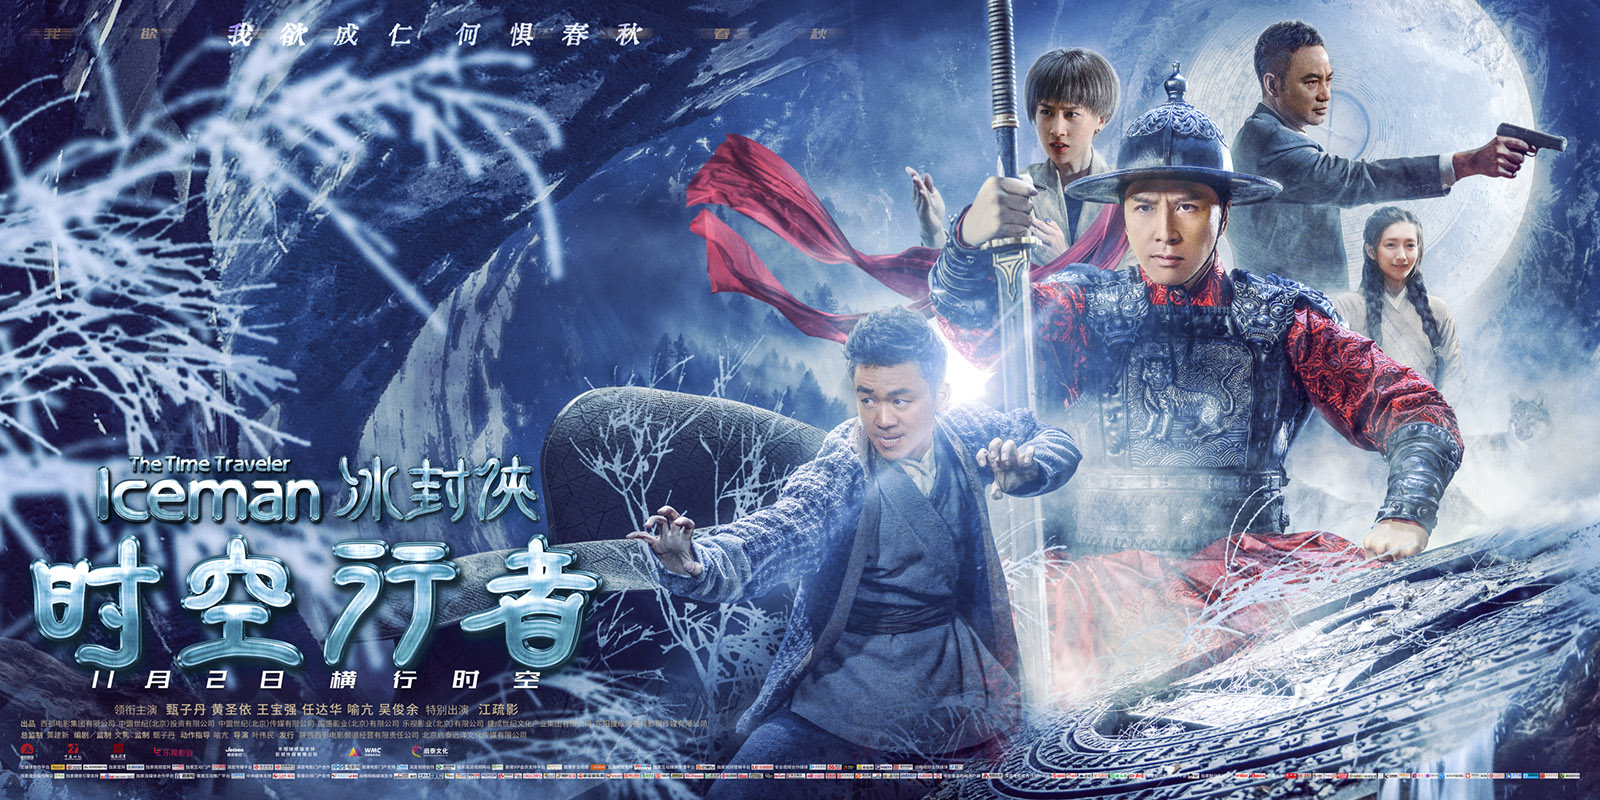 The film' time traveler 'opens today and the ice man donnie yen wang baoqiang officially goes to war